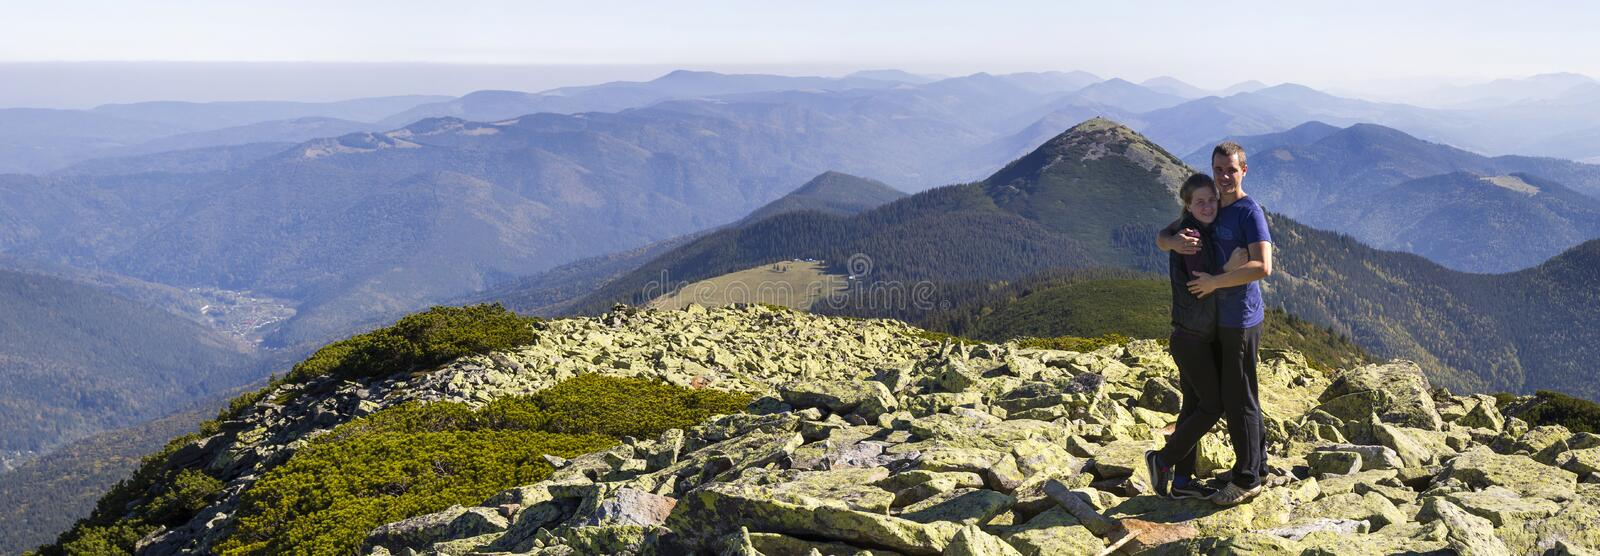 Young couple hike in Carpathian mountains. Man and woman standing on mountain top looking at beautiful landscape below. Wide panor. Ama of high rocky hills in royalty free stock image